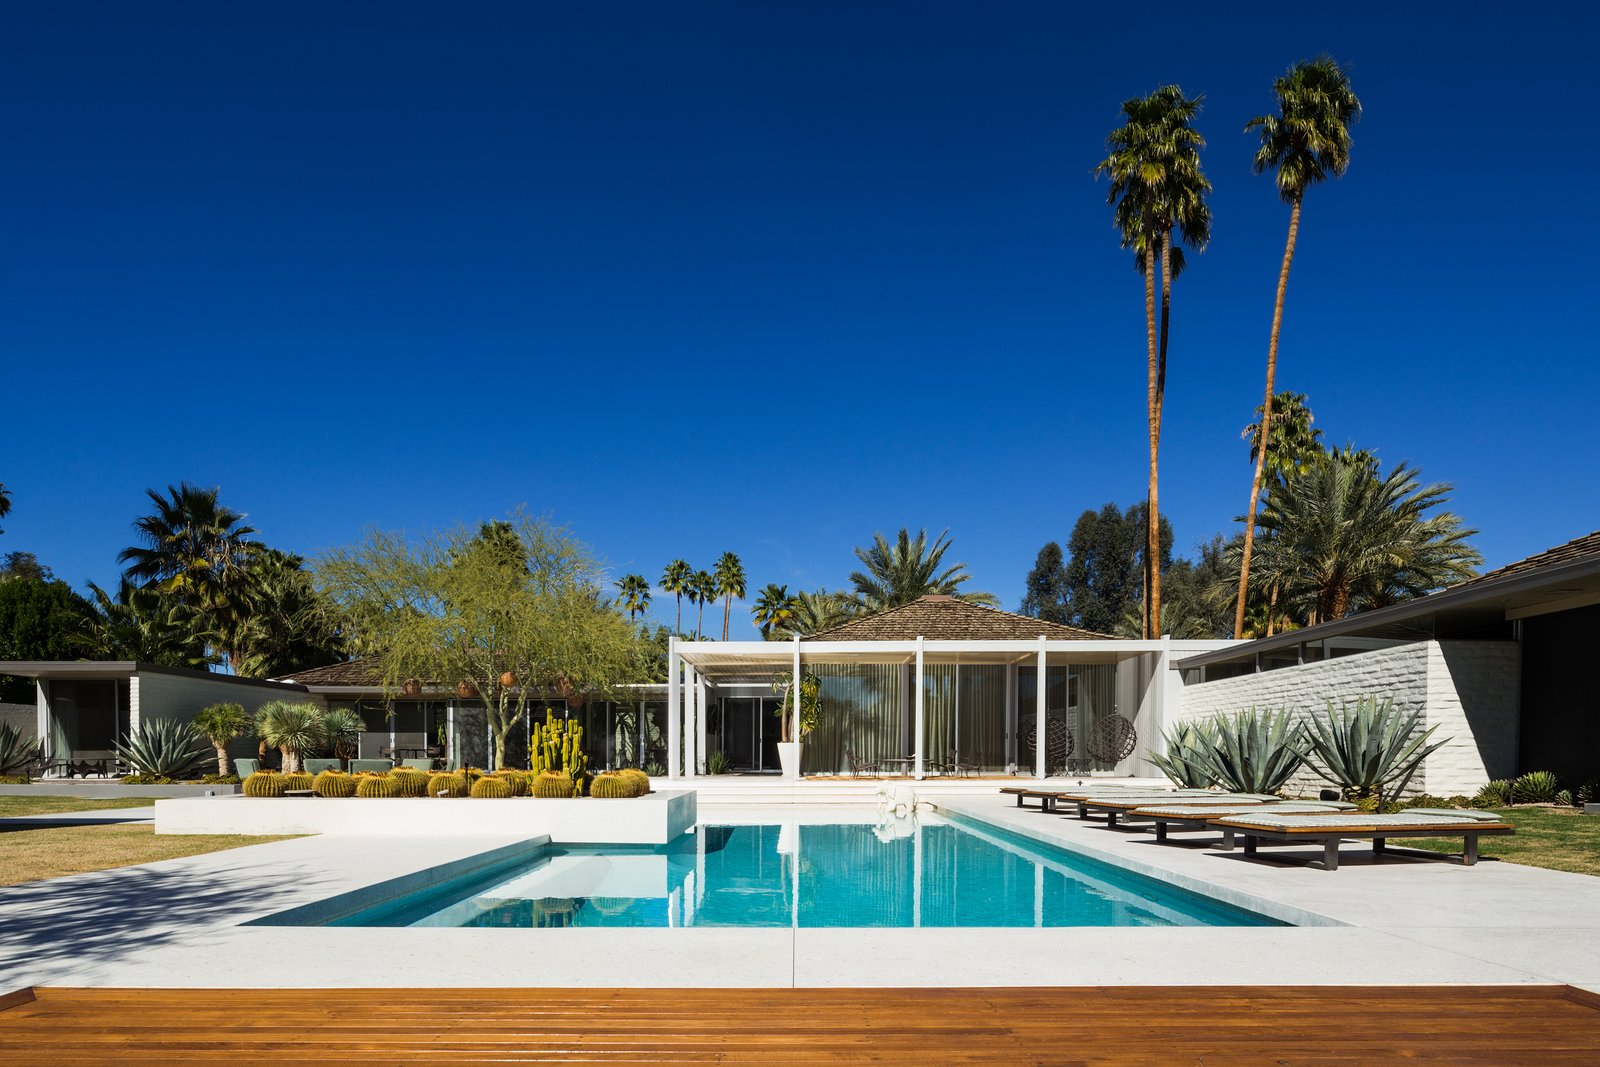 Abernathy House   Photo 2 of 10 in 10 Things You Shouldn't Miss at Modernism Week in Palm Springs